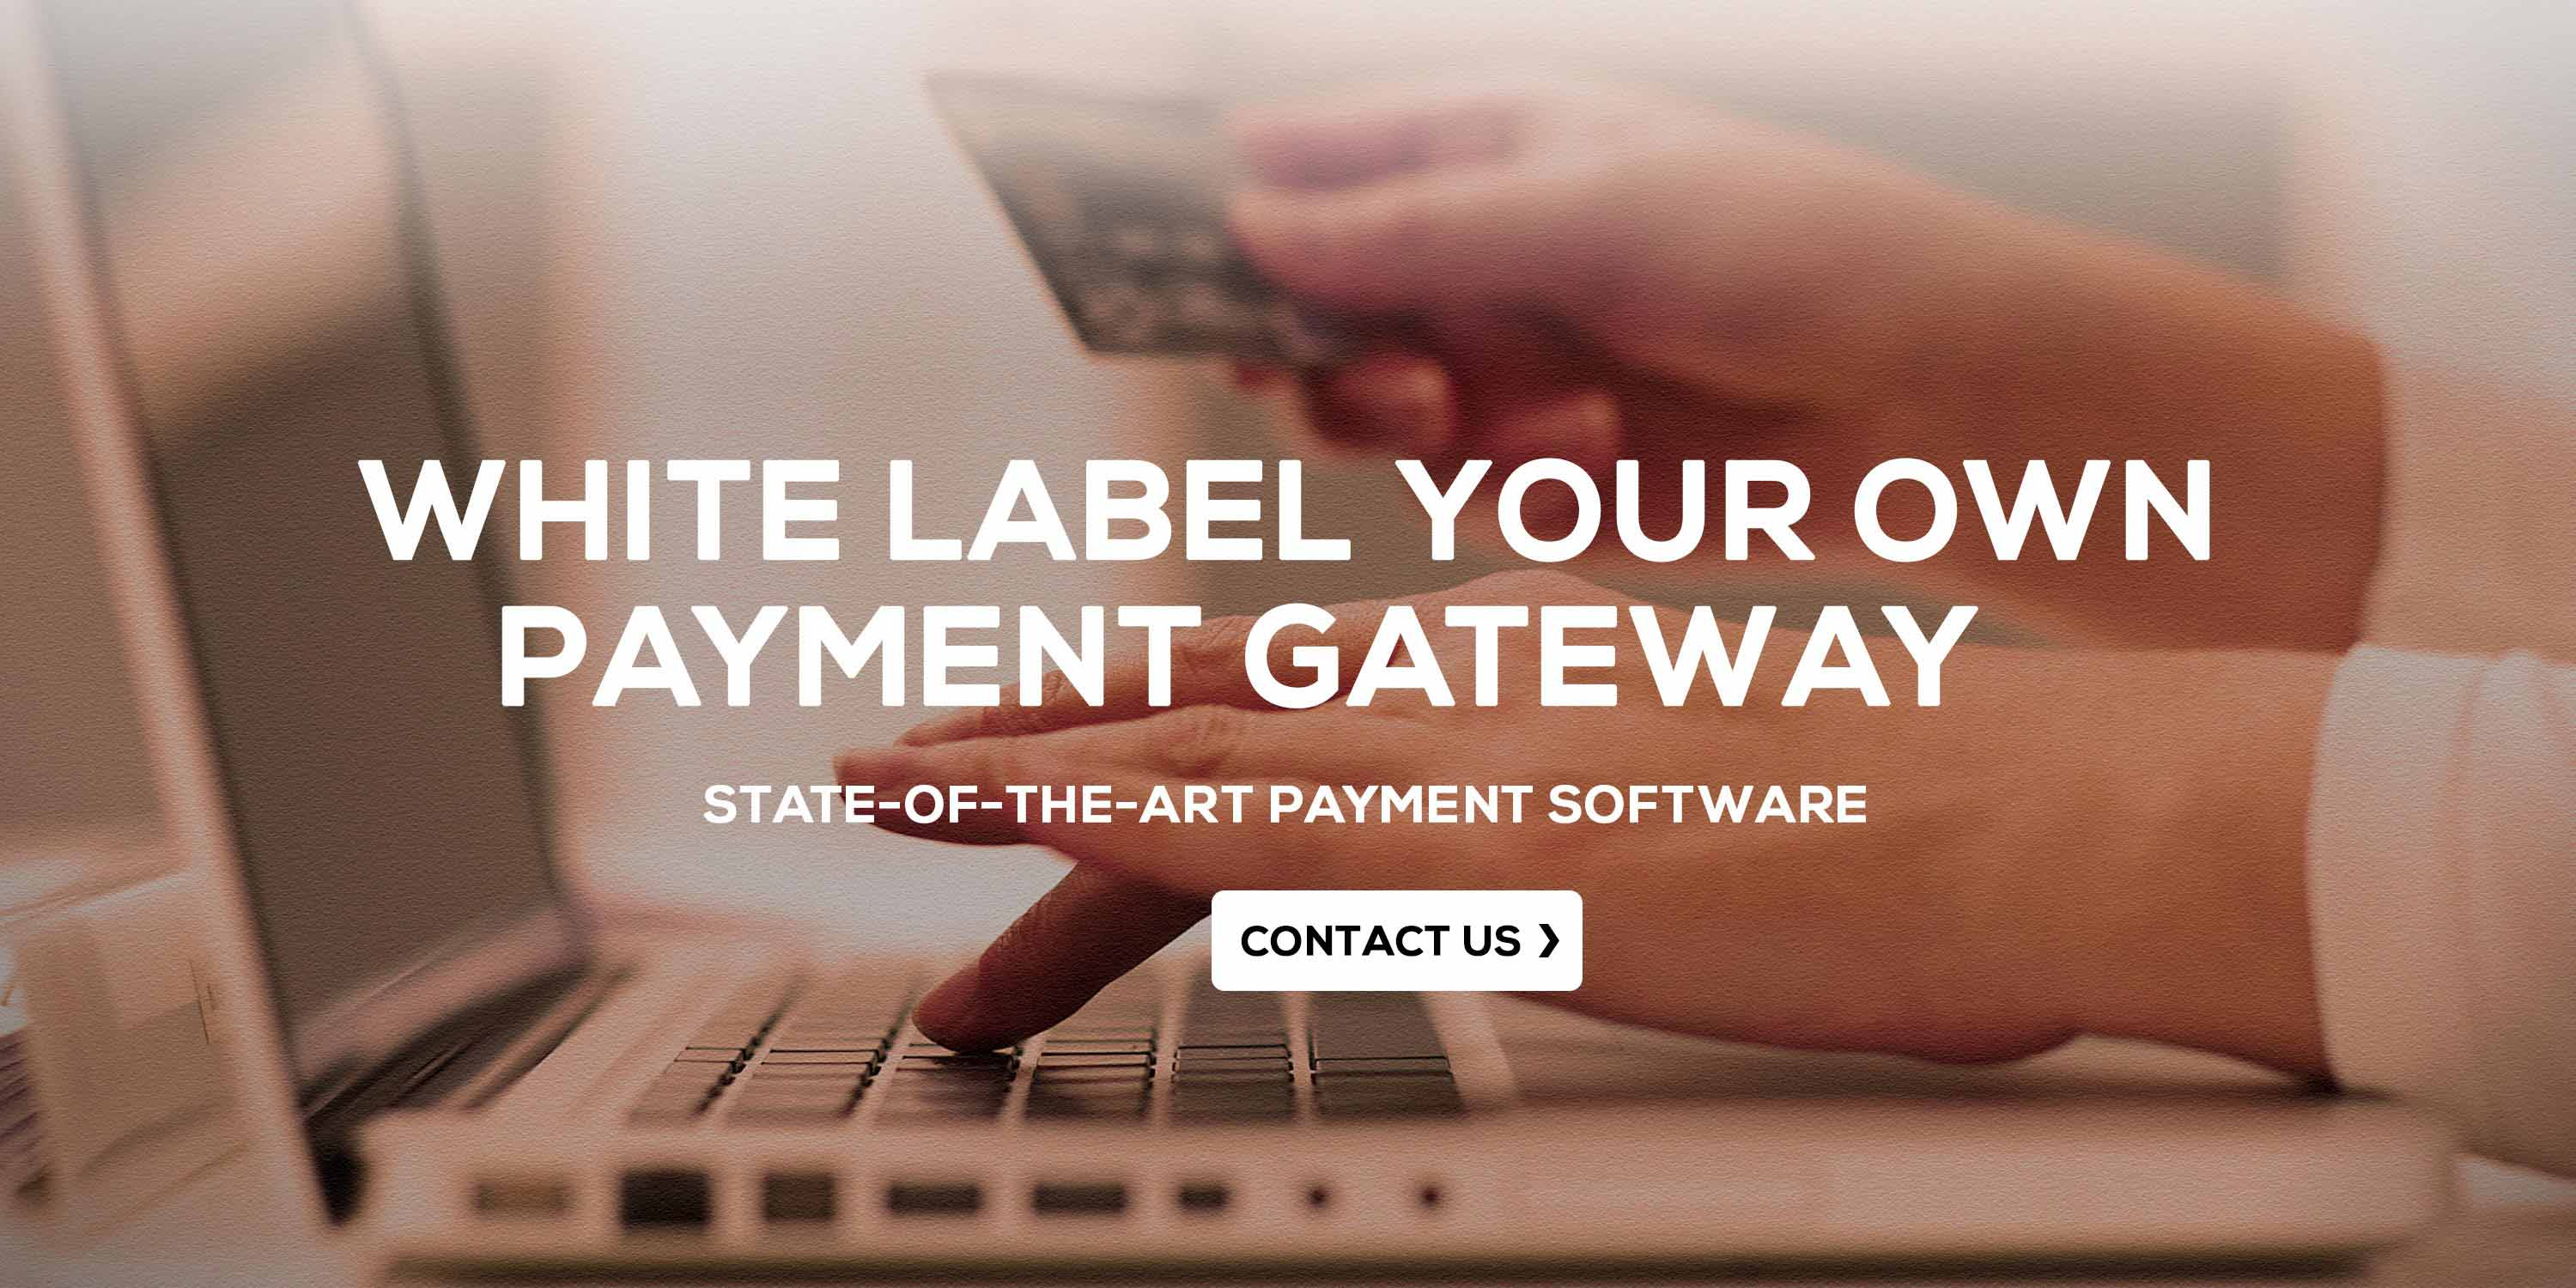 White Label Your Own Payment Gateway